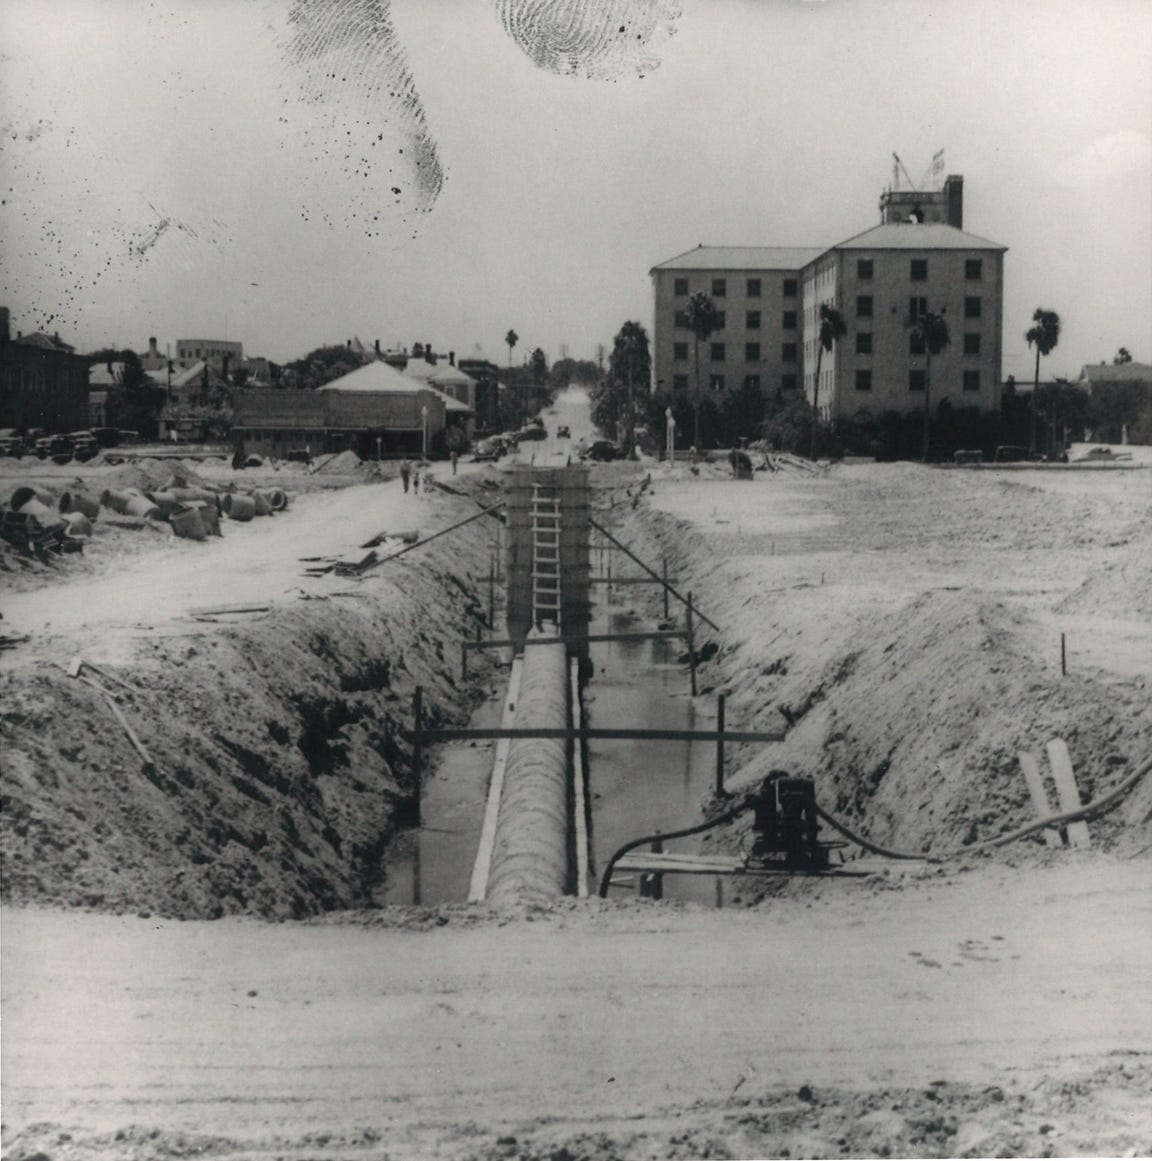 Construction of the seawall in Corpus Christi took place from 1939 to 1941. The Princess Louise Hotel is in the background on the right. The building still stands at Water and Mann, and is called The Princess Apartments.